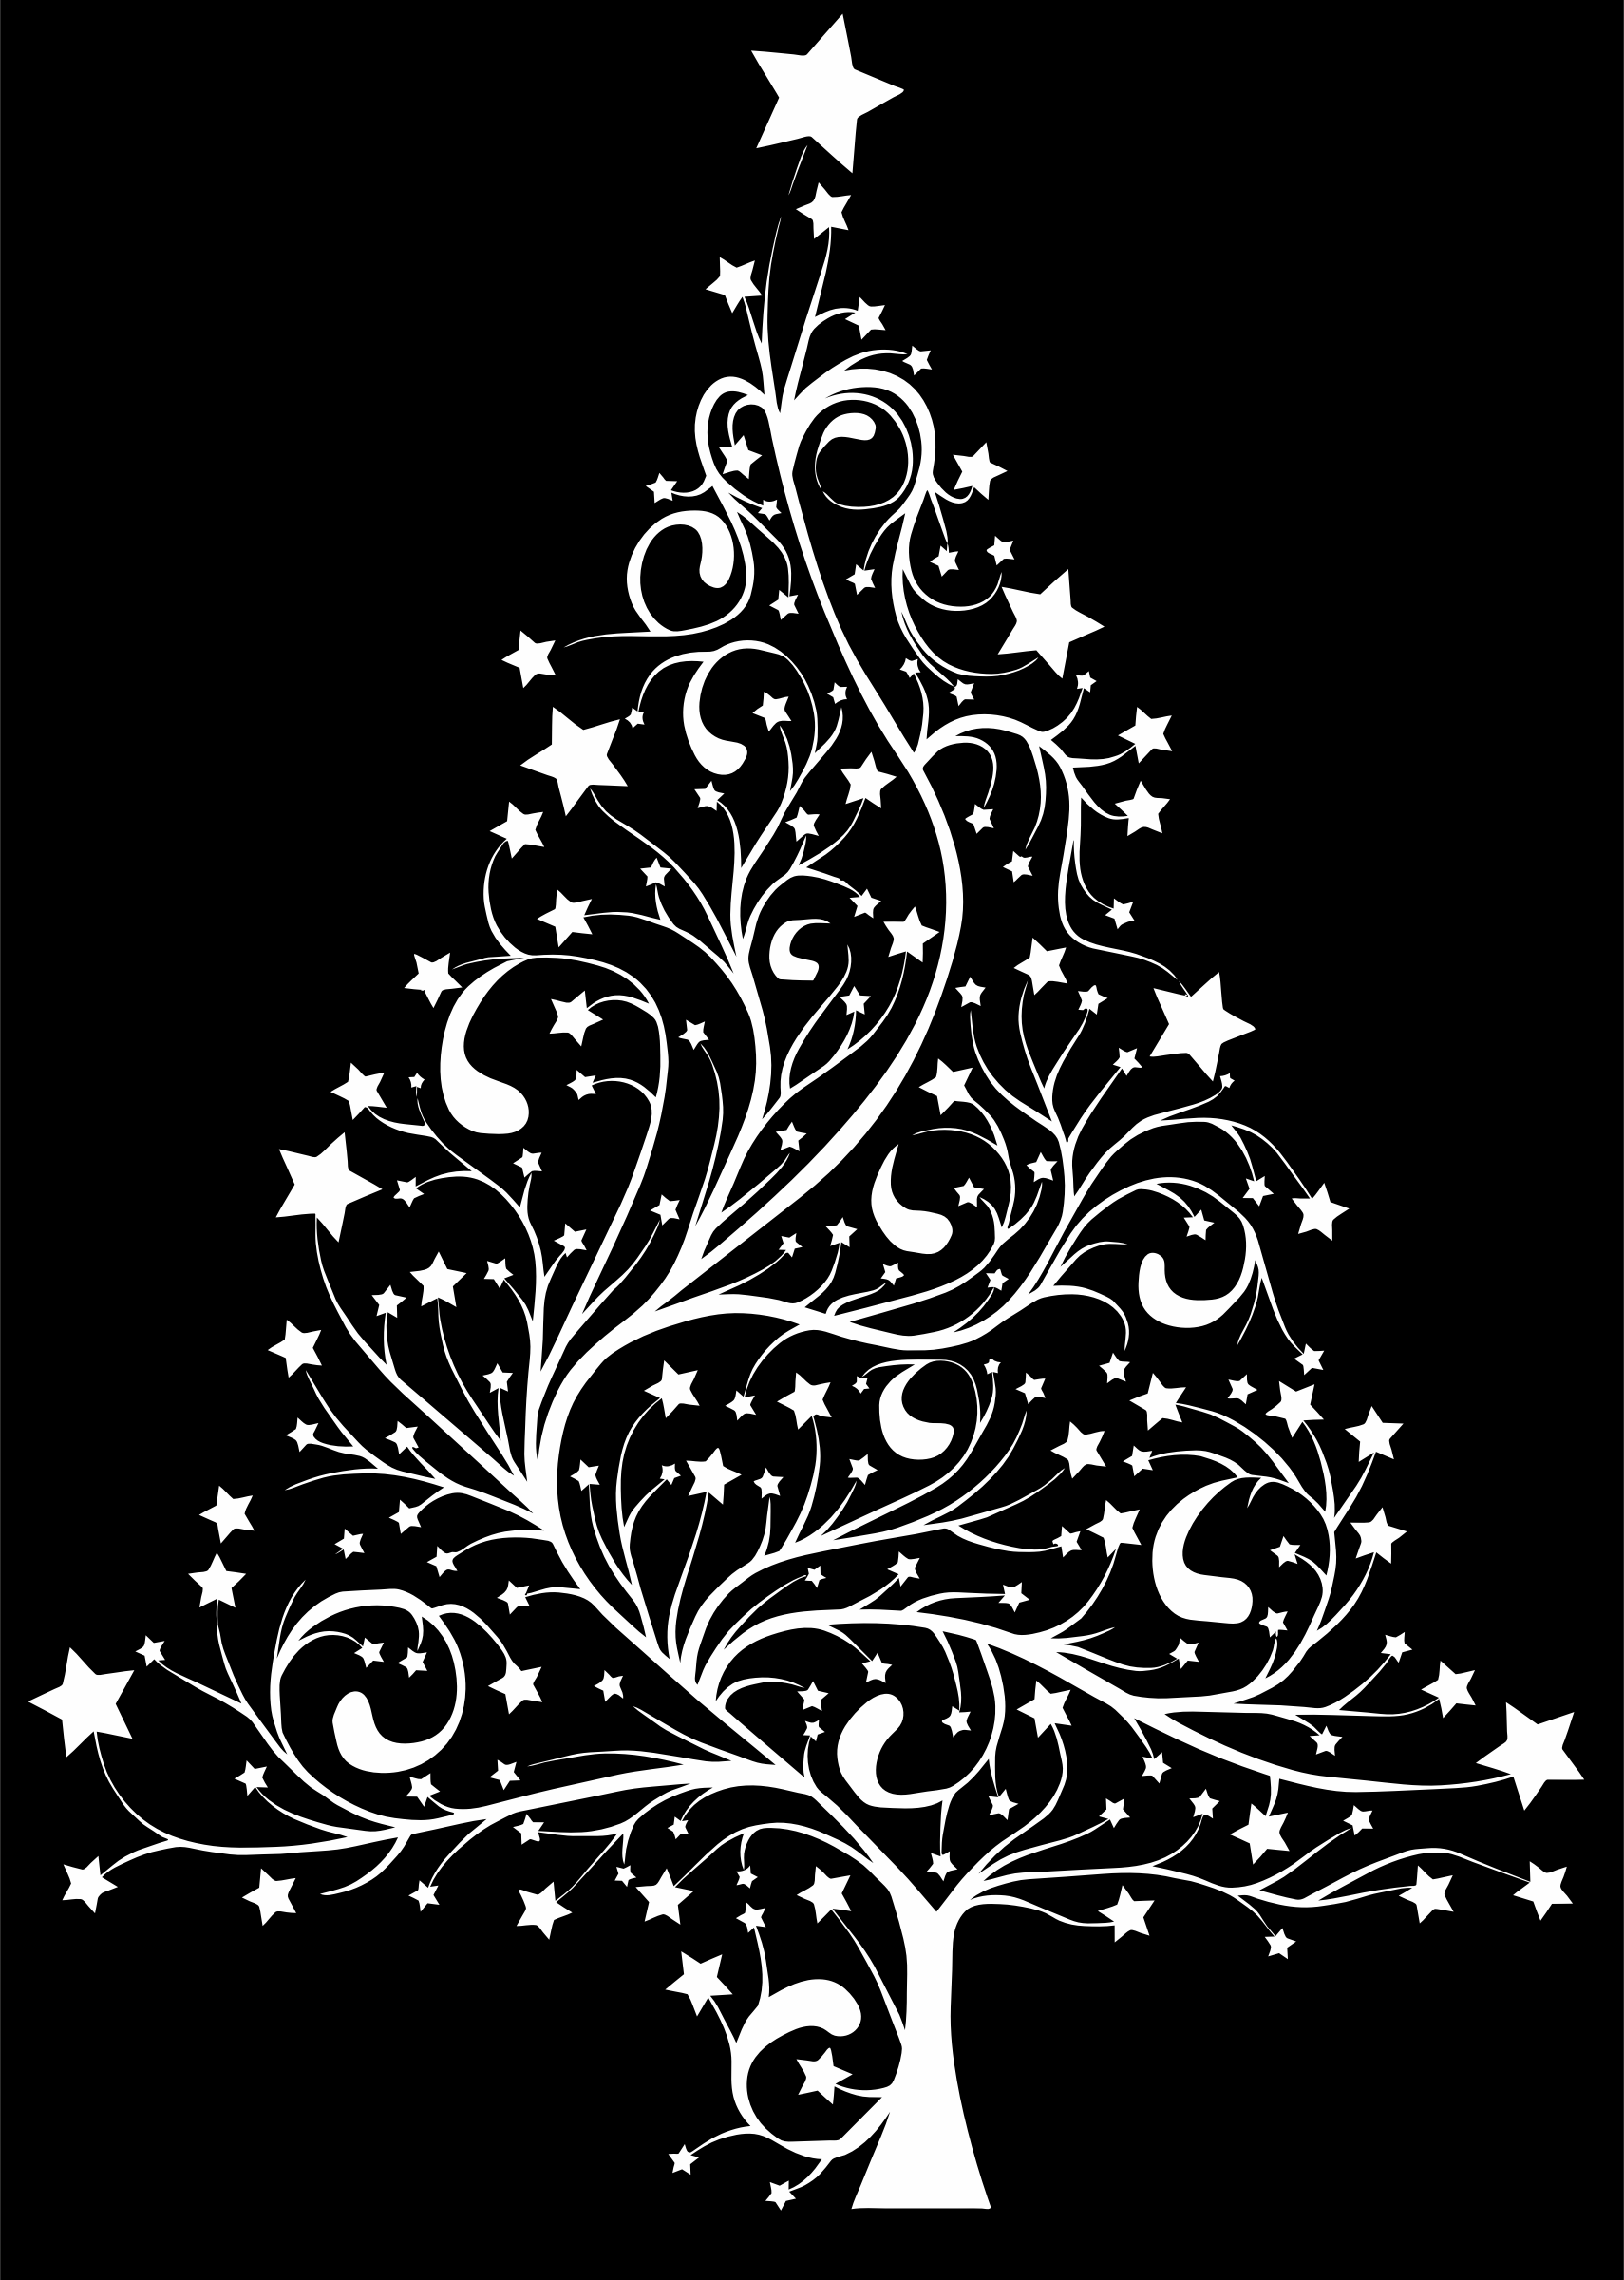 Starry Christmas Tree by GDJ From Pixabay Background is easily